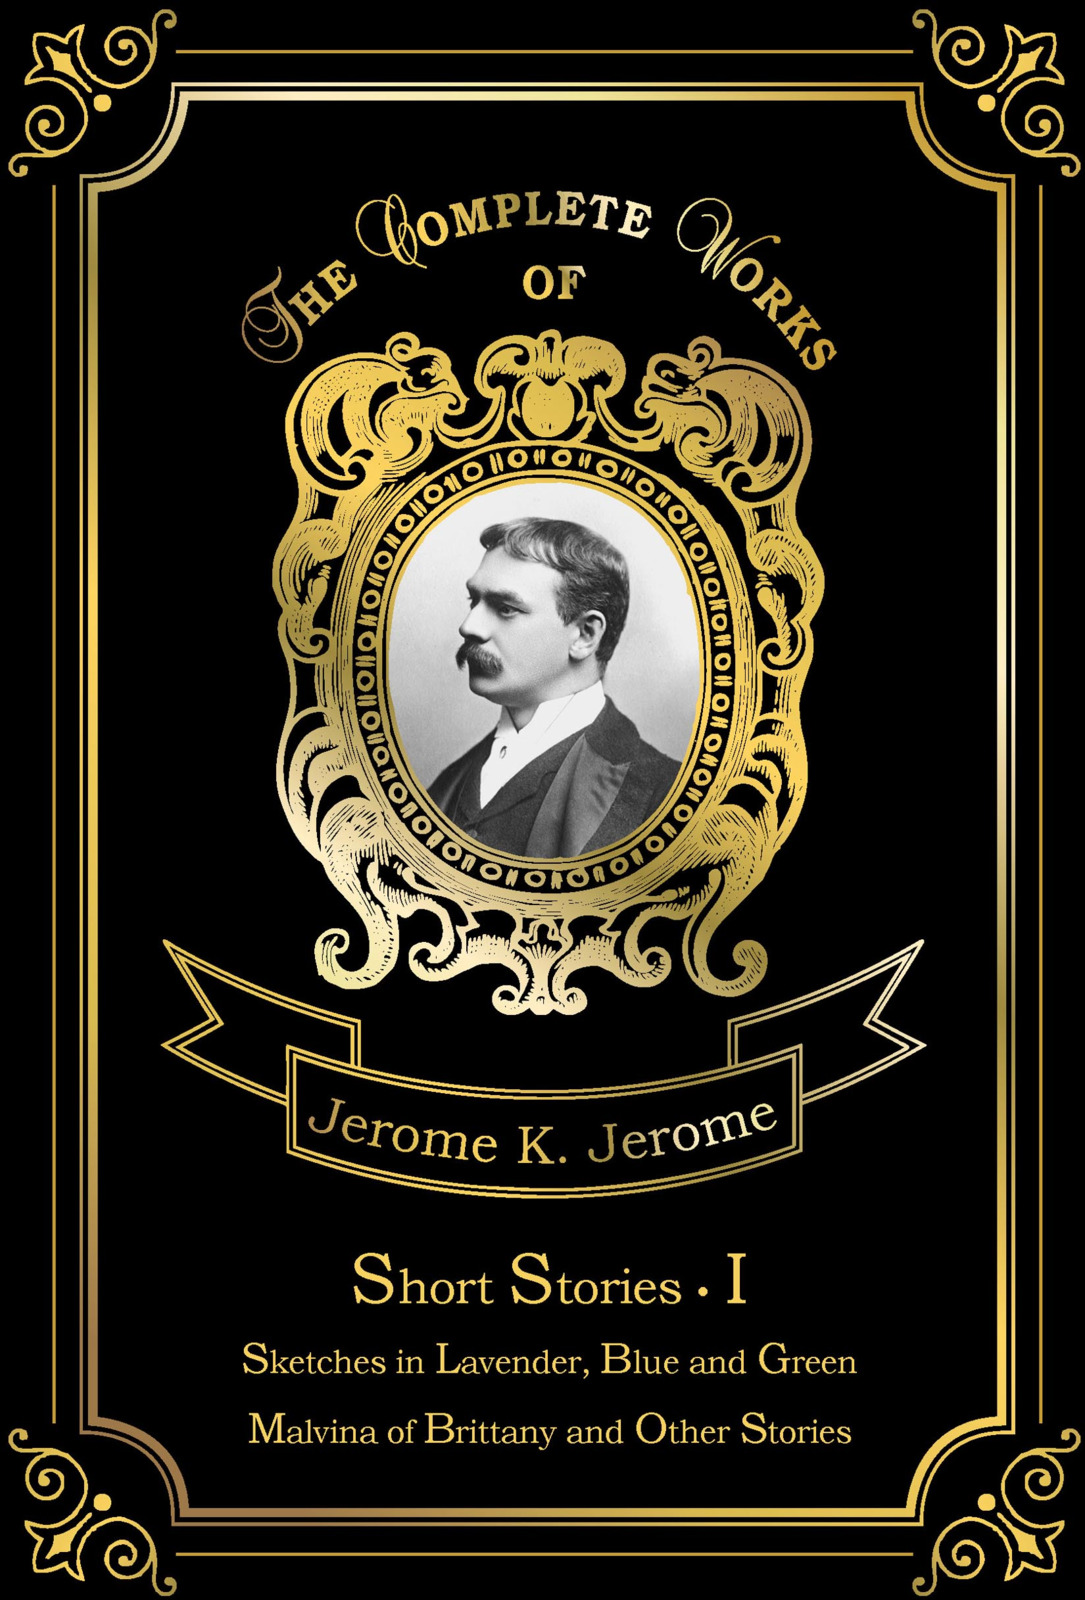 Jerome K. Jerome Short Stories I includes